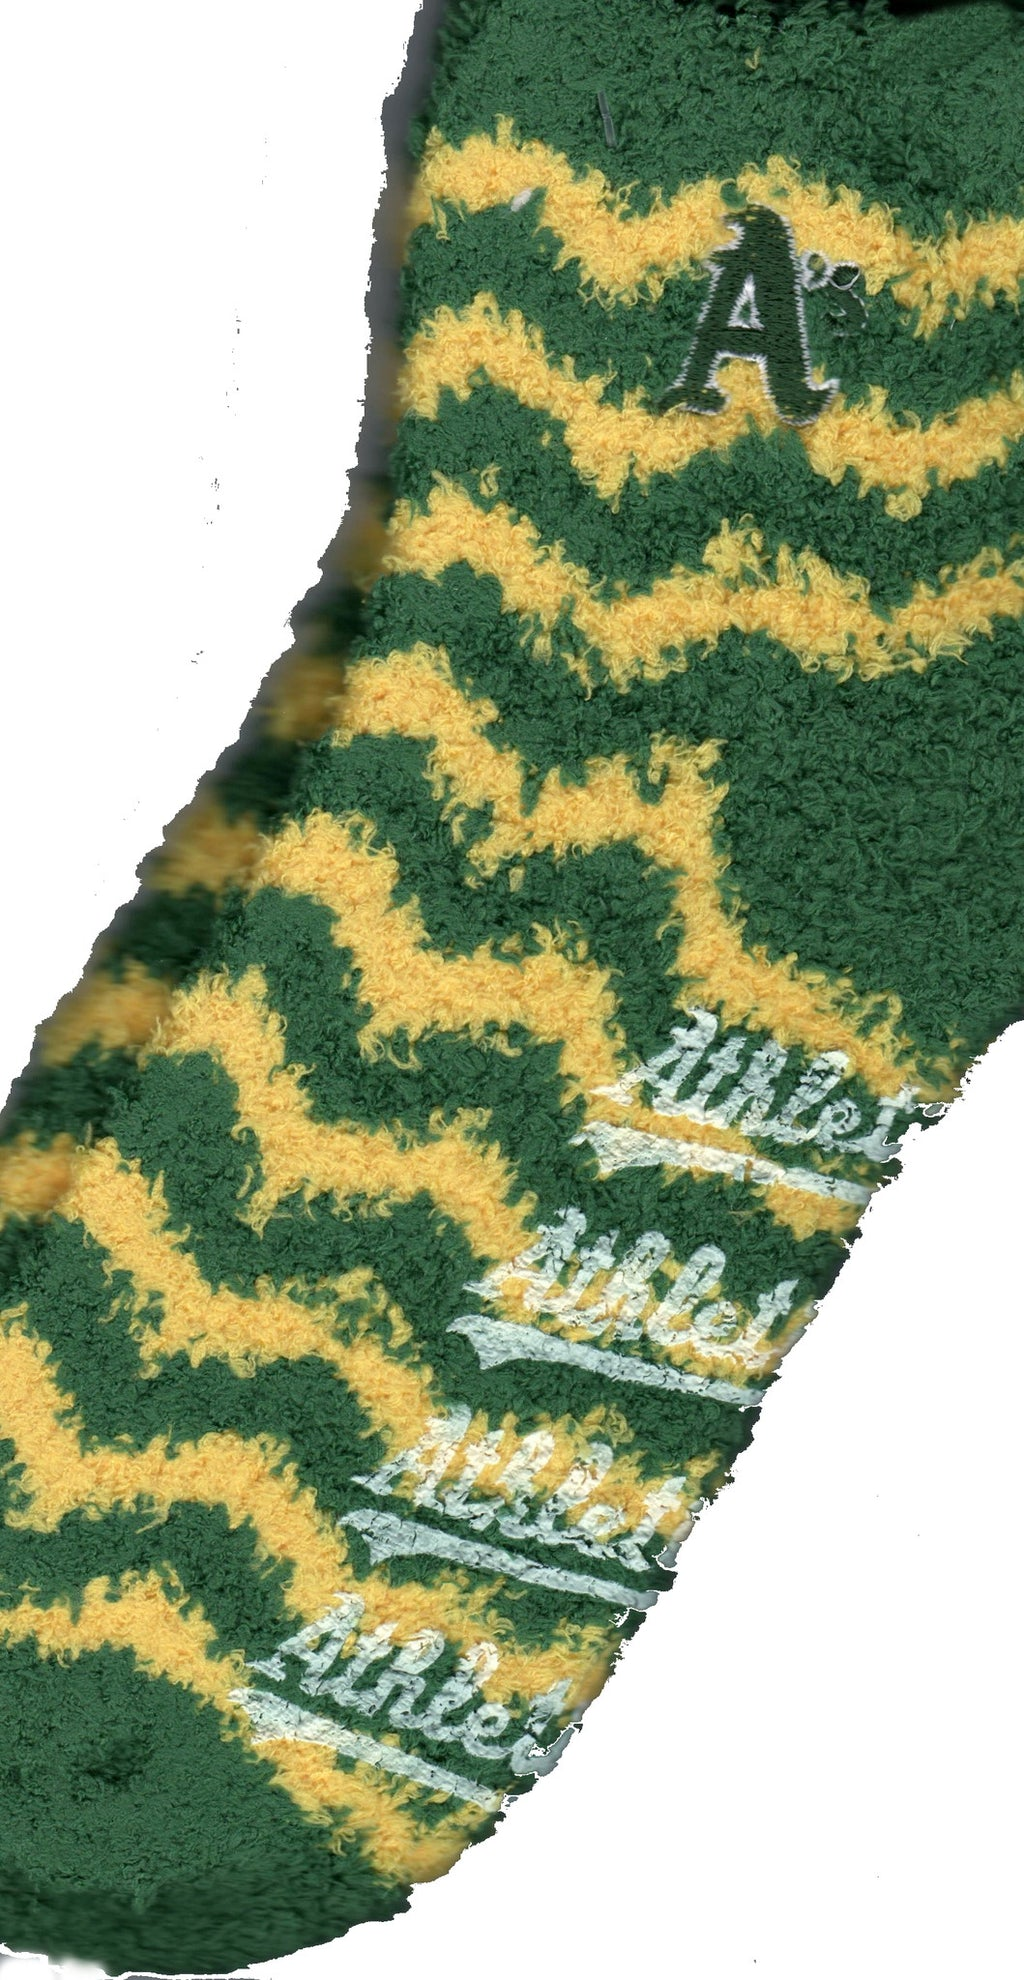 FBF Oakland Athletics Chevron Stripes Sleepsoft Non-Skid Sock follows the A's Colors of Forest Green and Gold. In White Rubber the Non-Skid is Heat Sealed to the bottom of the Sock. The Logo is in Forest Green.